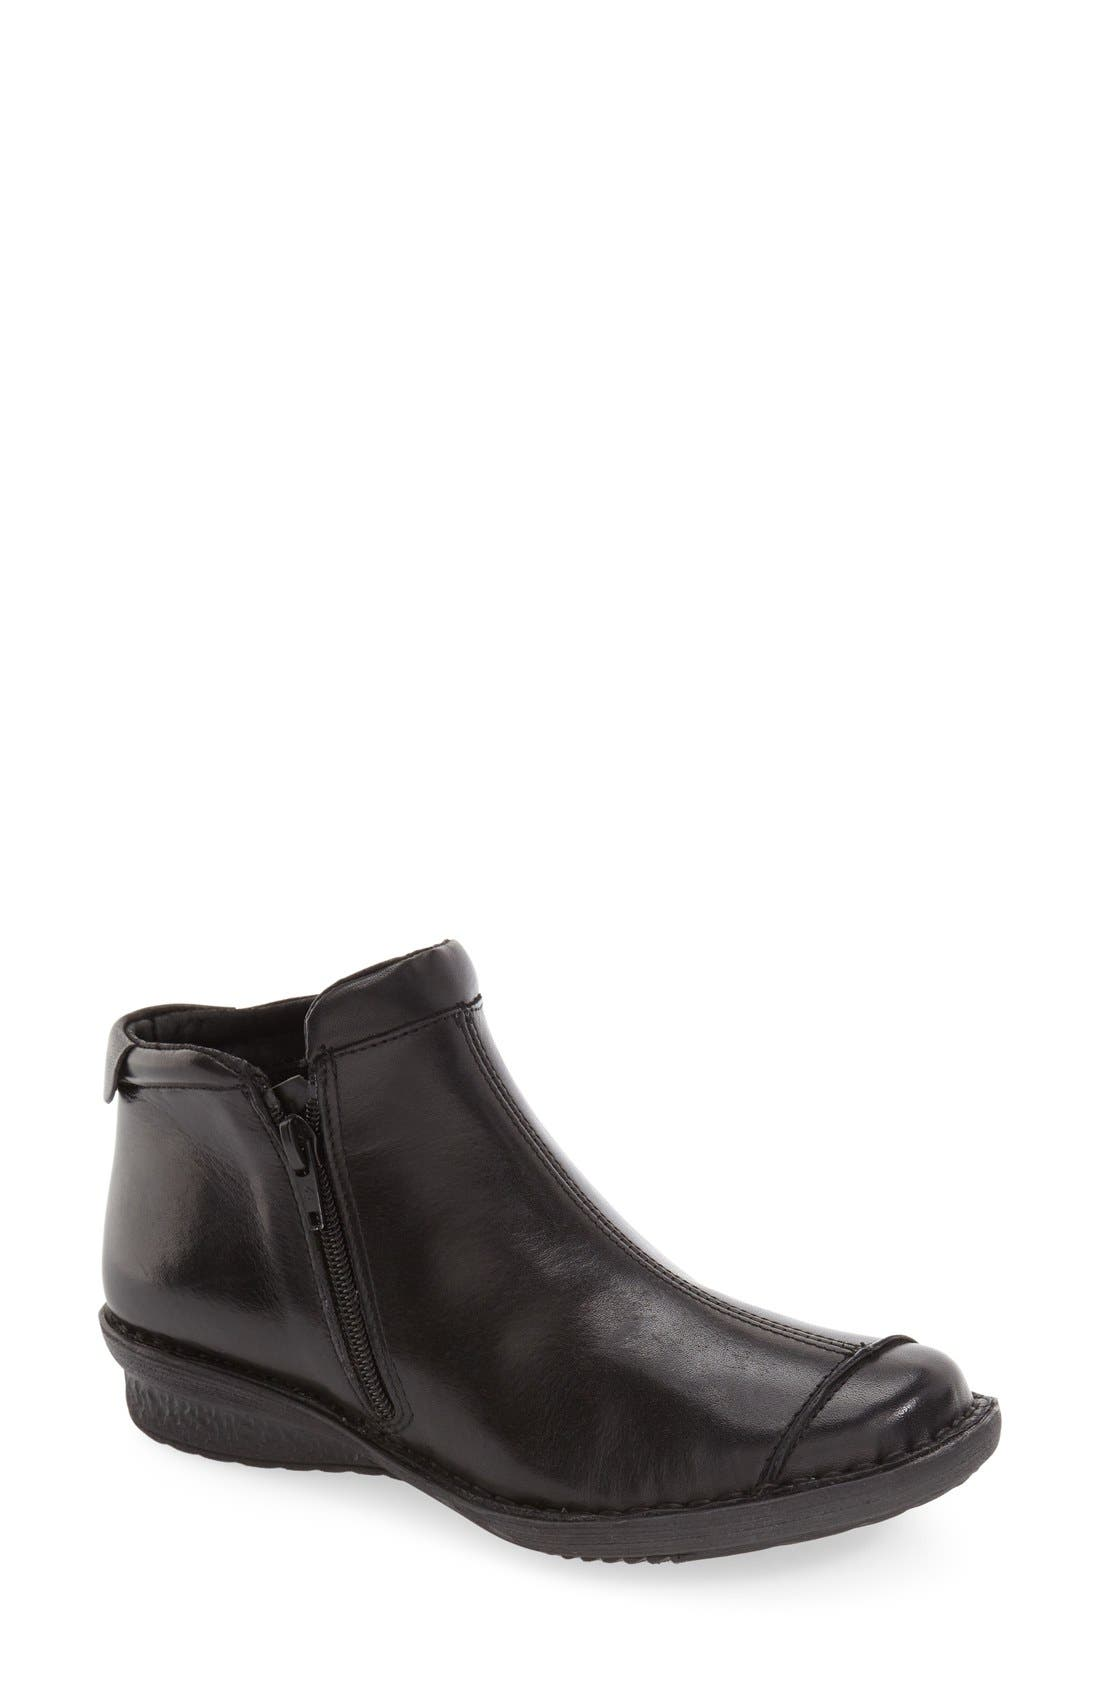 'Euro' Zip Bootie,                         Main,                         color, 001